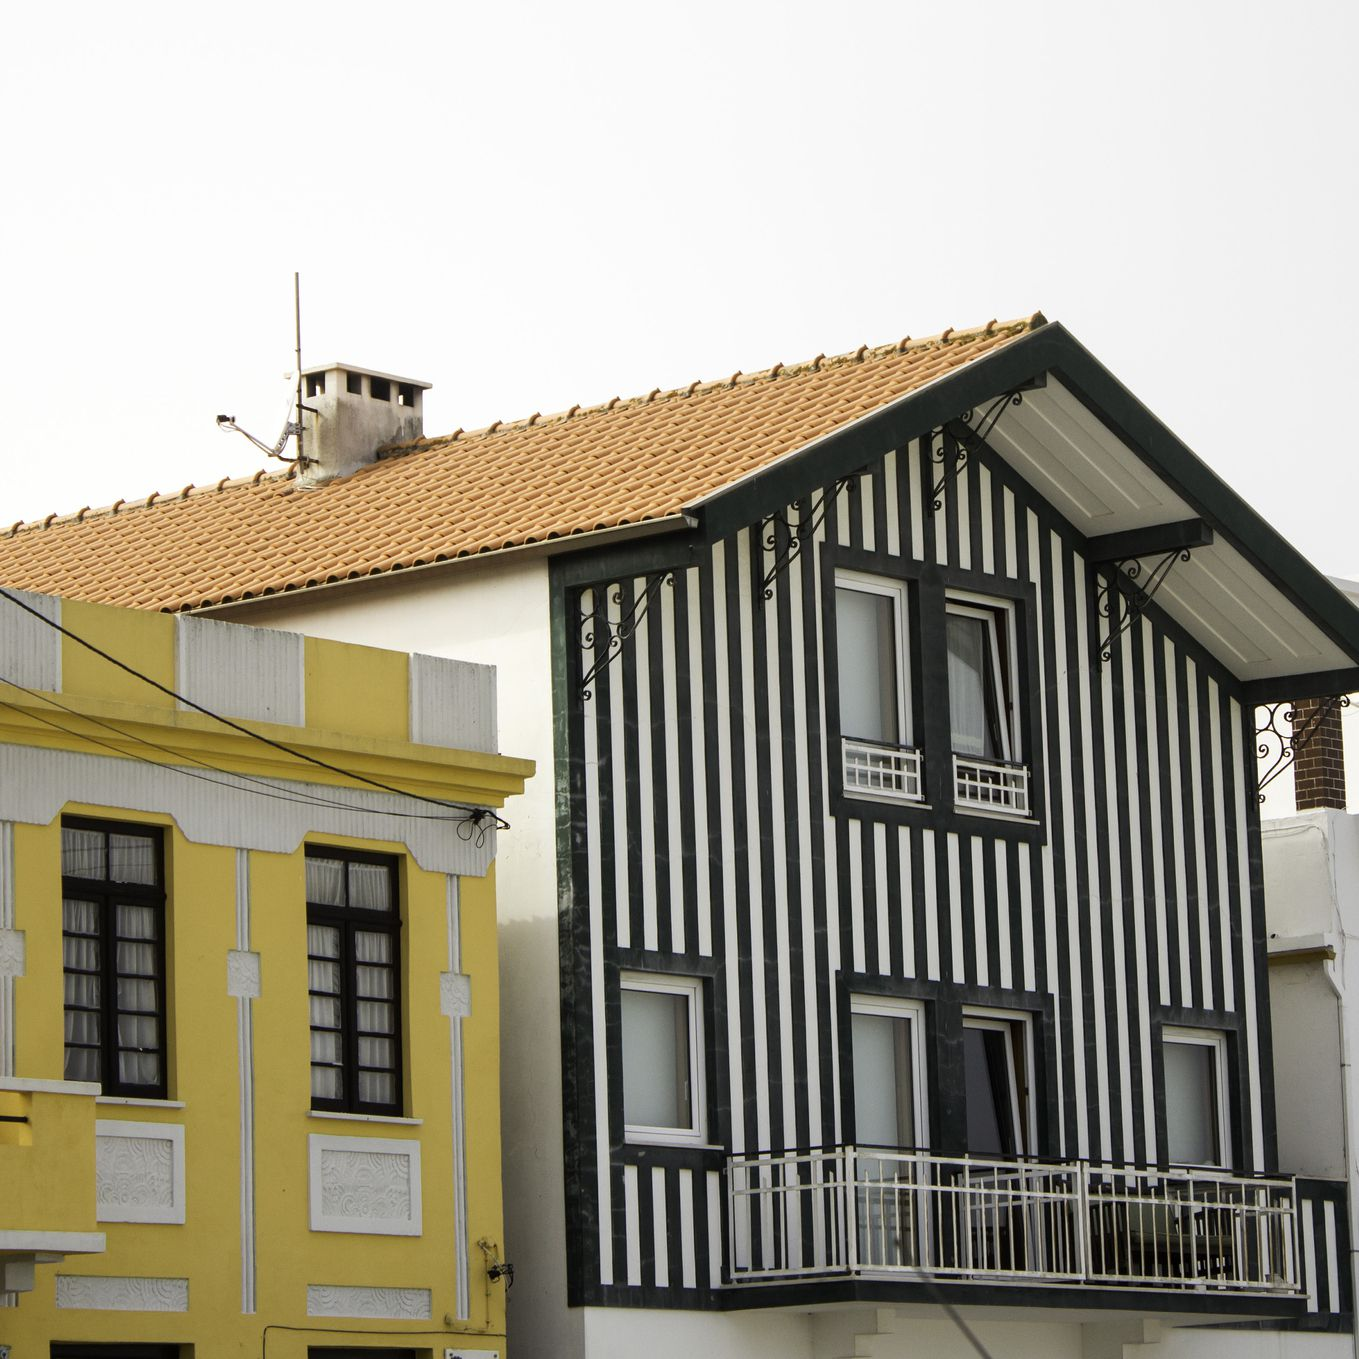 Half-Day Trip Ideas From These Cities to Aveiro